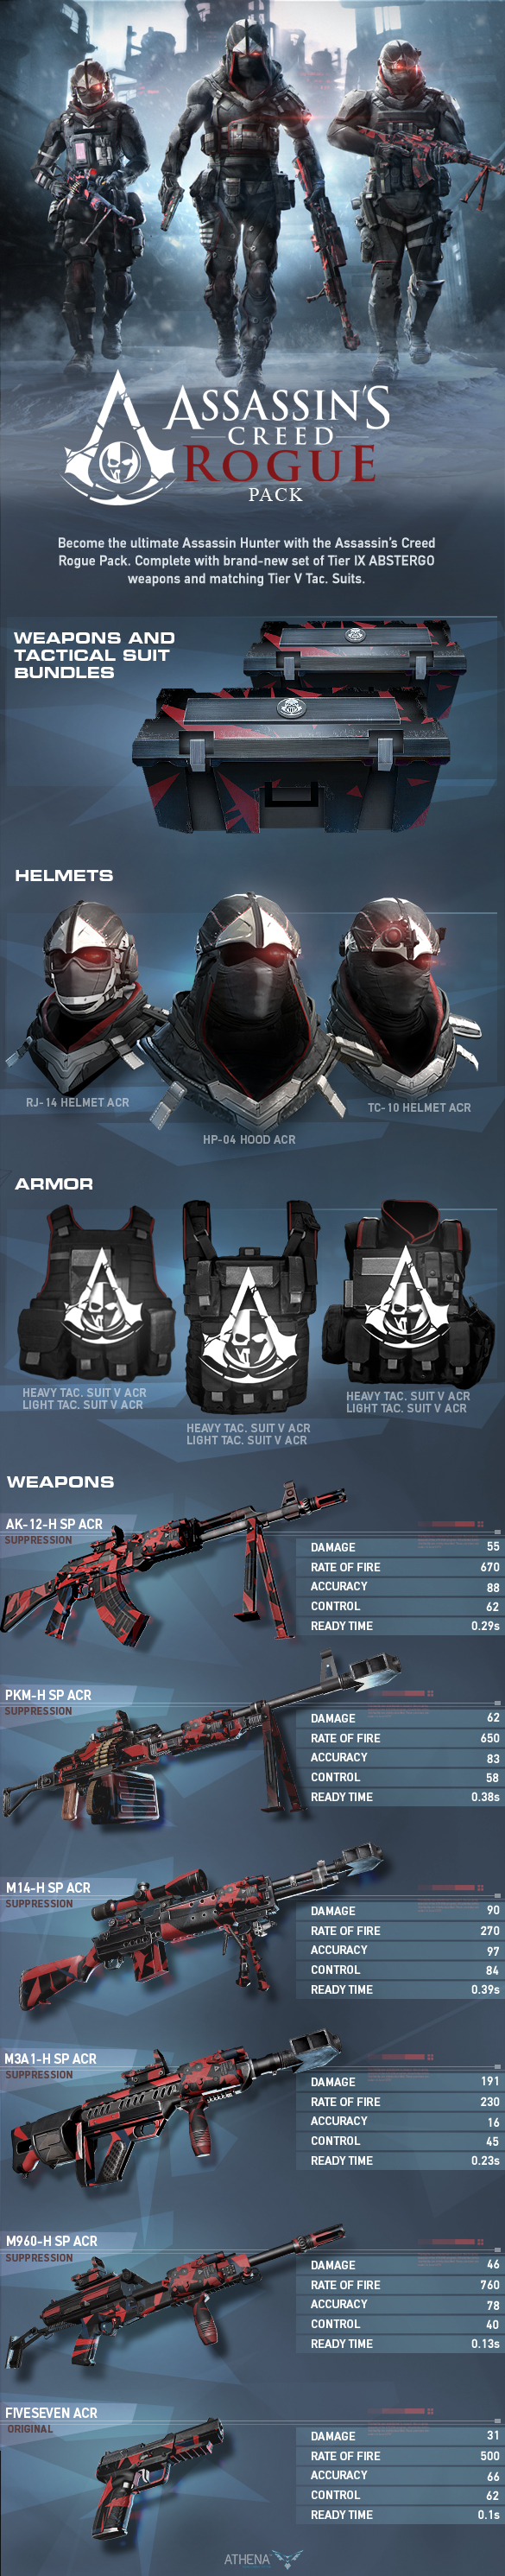 Phantoms and ghosts gear up with assassin s creed rogue arabic